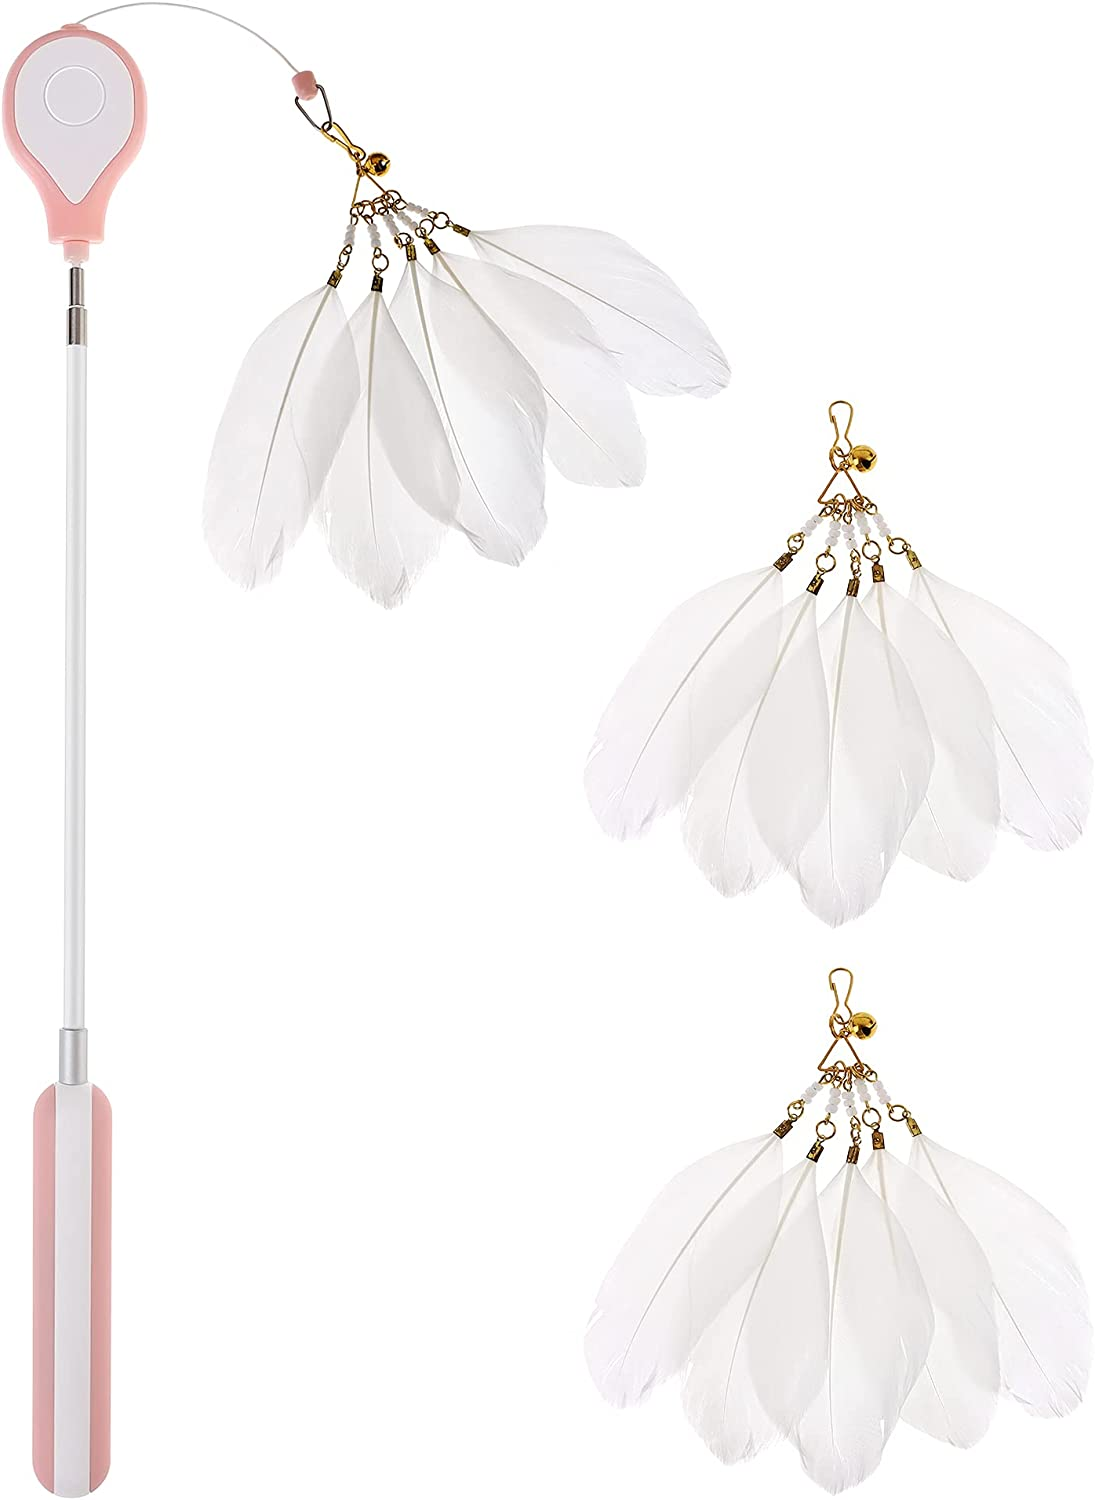 Cat Feather Teaser Wand Toys Include Dallas Mall Retractable New sales 3 PCS